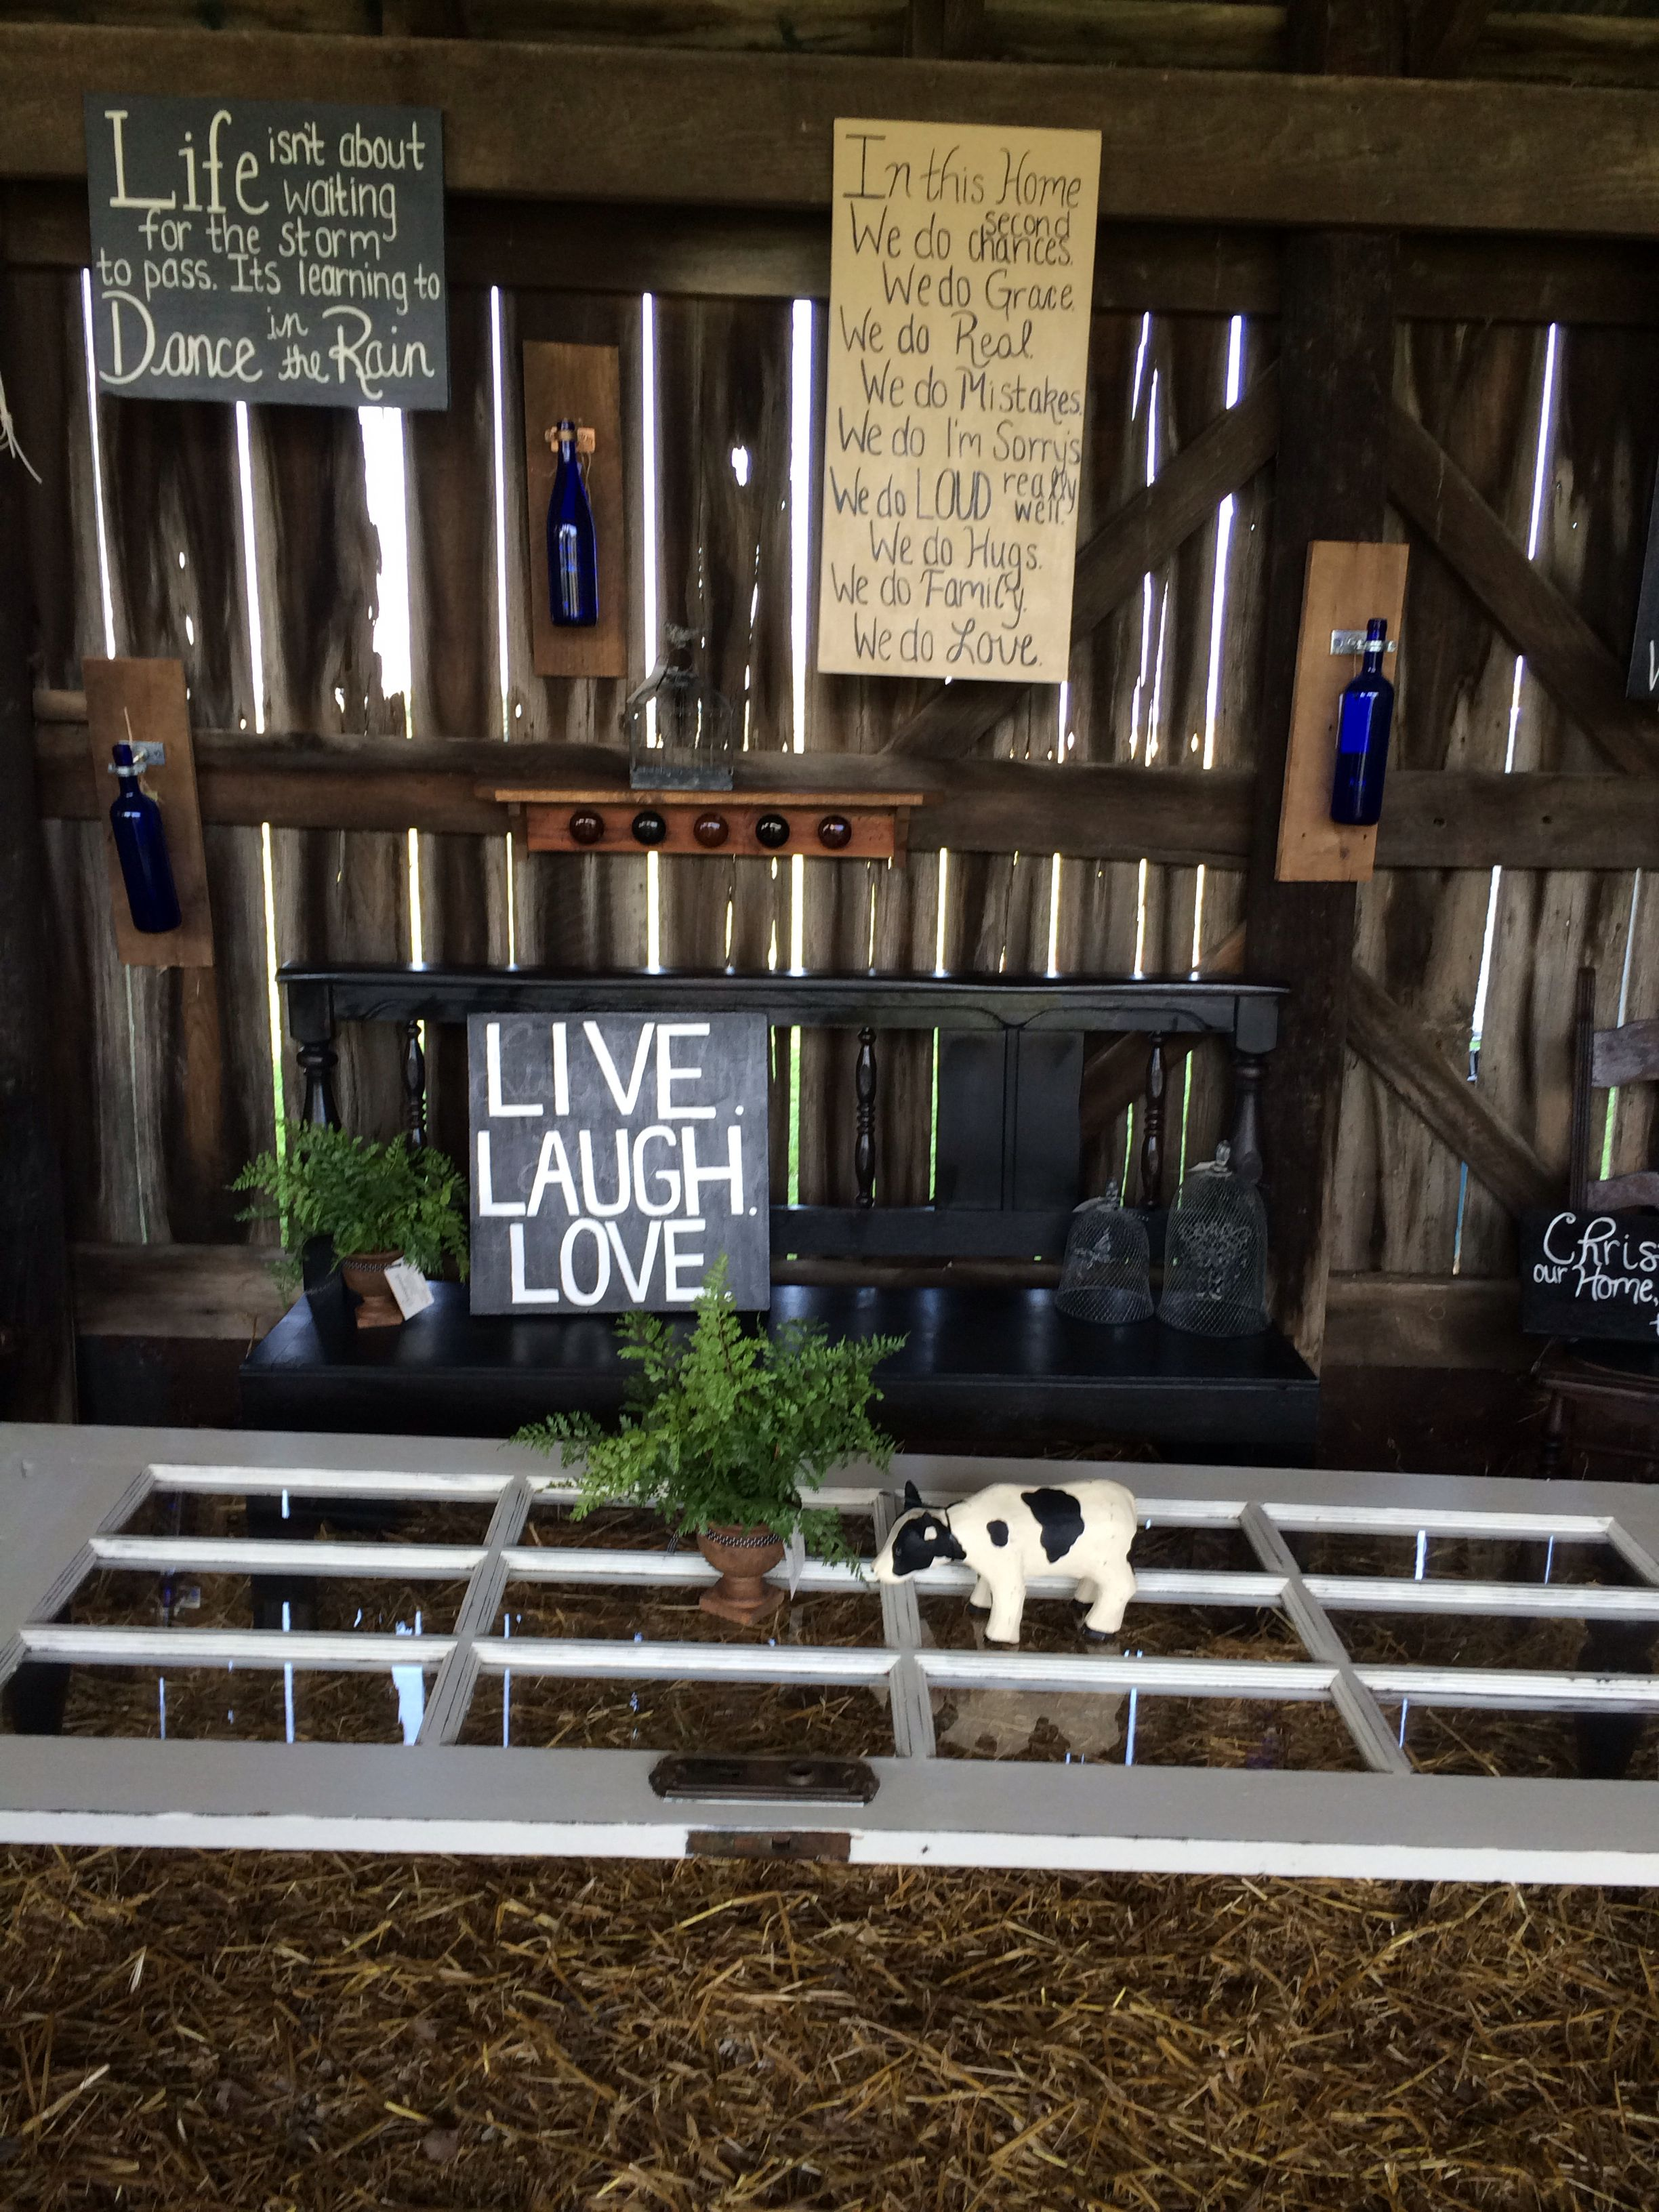 Repurposed furniture at Chandelier Barn Market! Davies county Indiana. Find em on fb! Date set for sept 2015... Barns full of makers.. Music, food, and creativity all nestled in the heart of the county's Amish community. Awesome turn out this year! You don't wanna miss it next year!